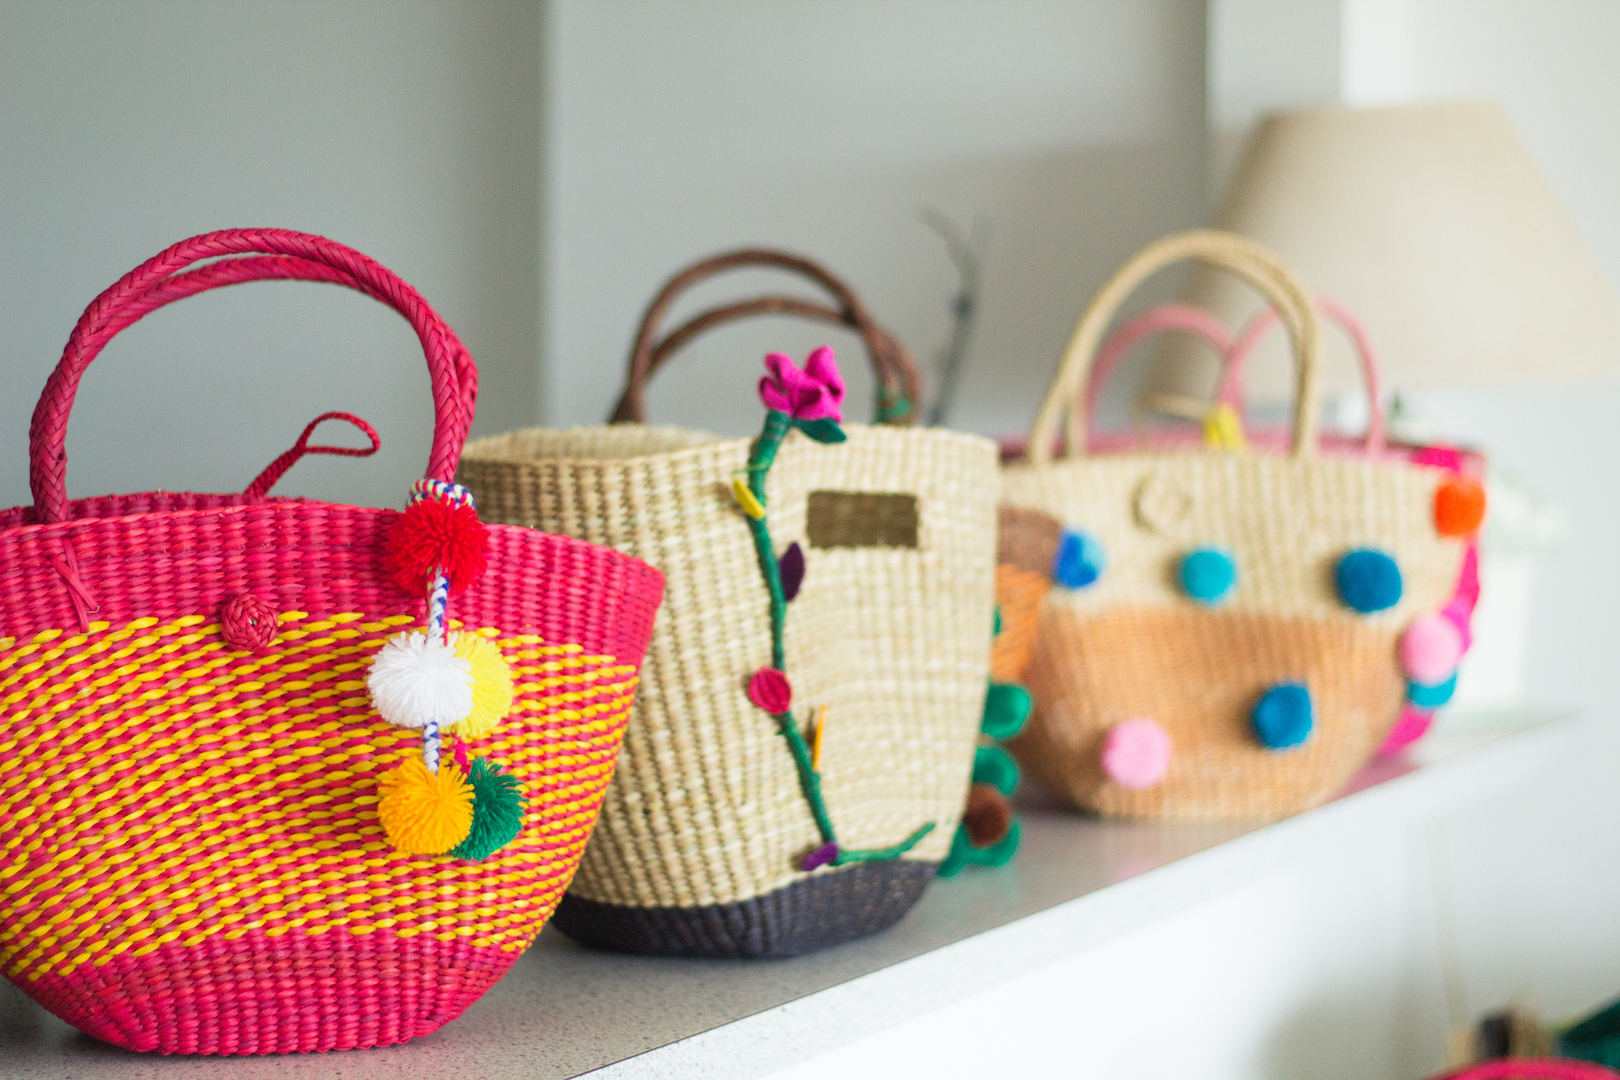 The Made in Peru straw bags every girl wants!